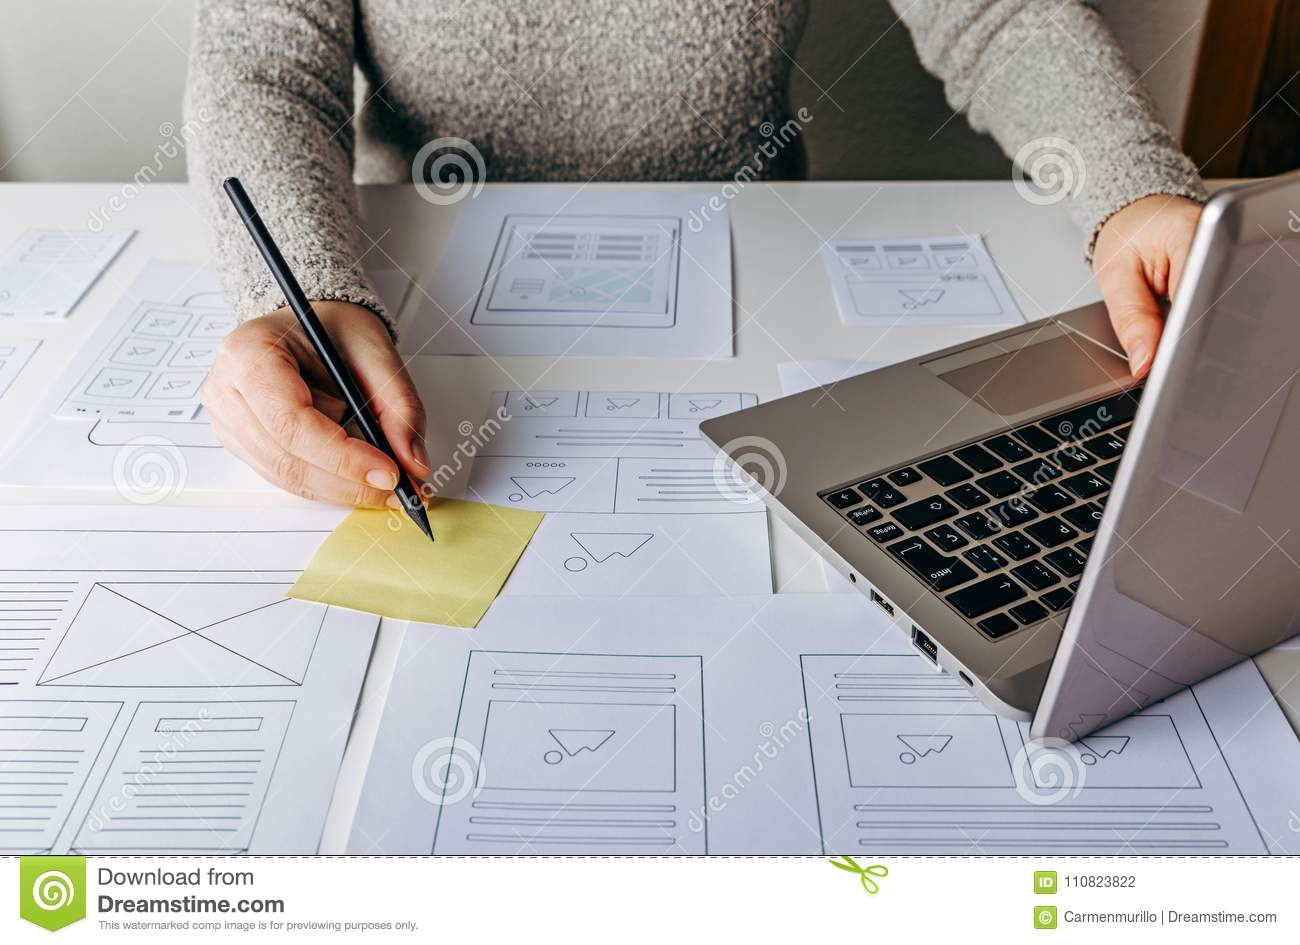 Web designer working at laptop and website wireframe sketches